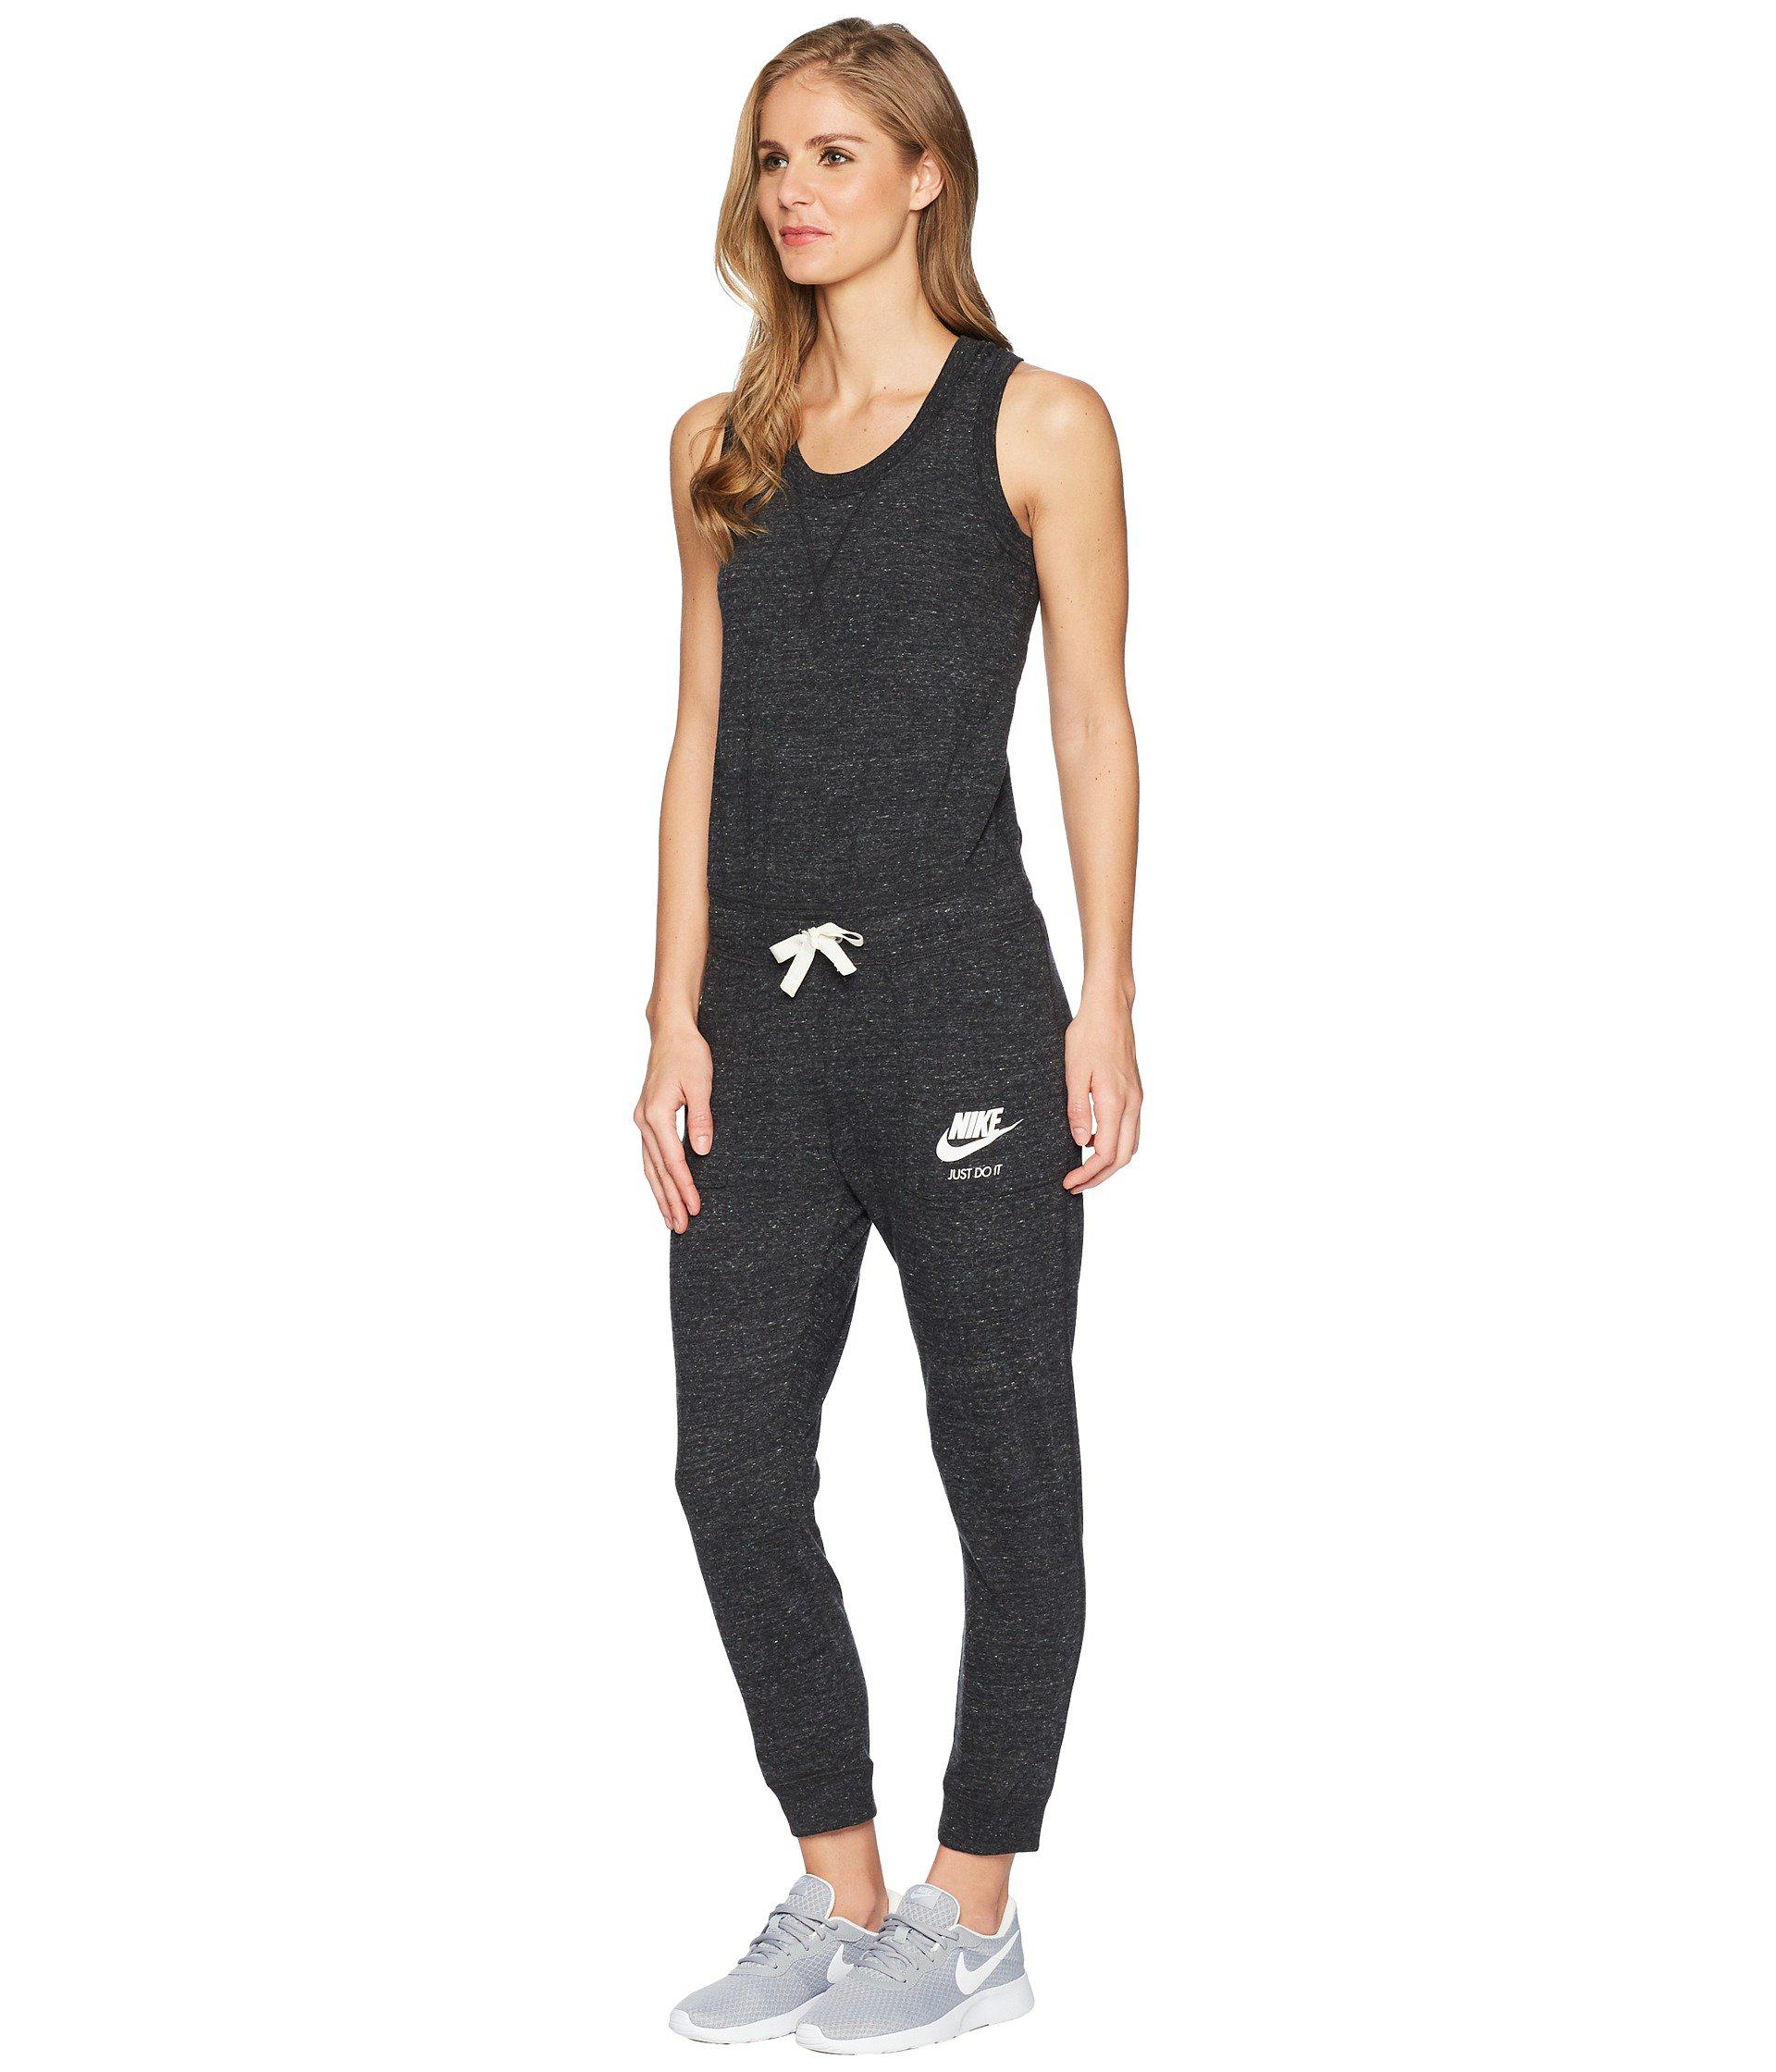 c027db78658a nike one piece jumpsuit